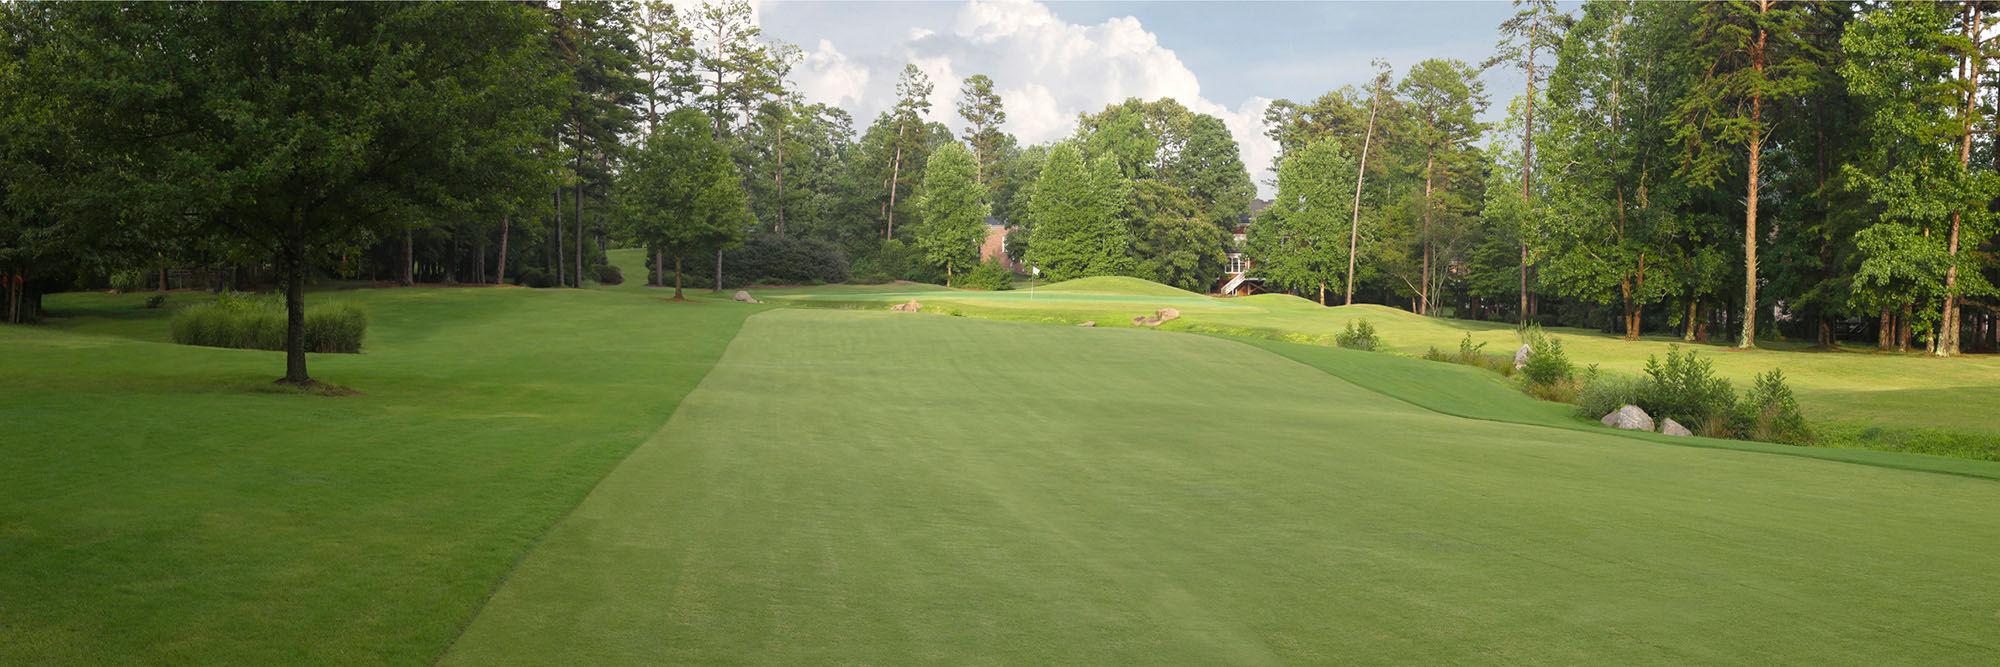 Golf Course Image - River Run Country Club No. 13